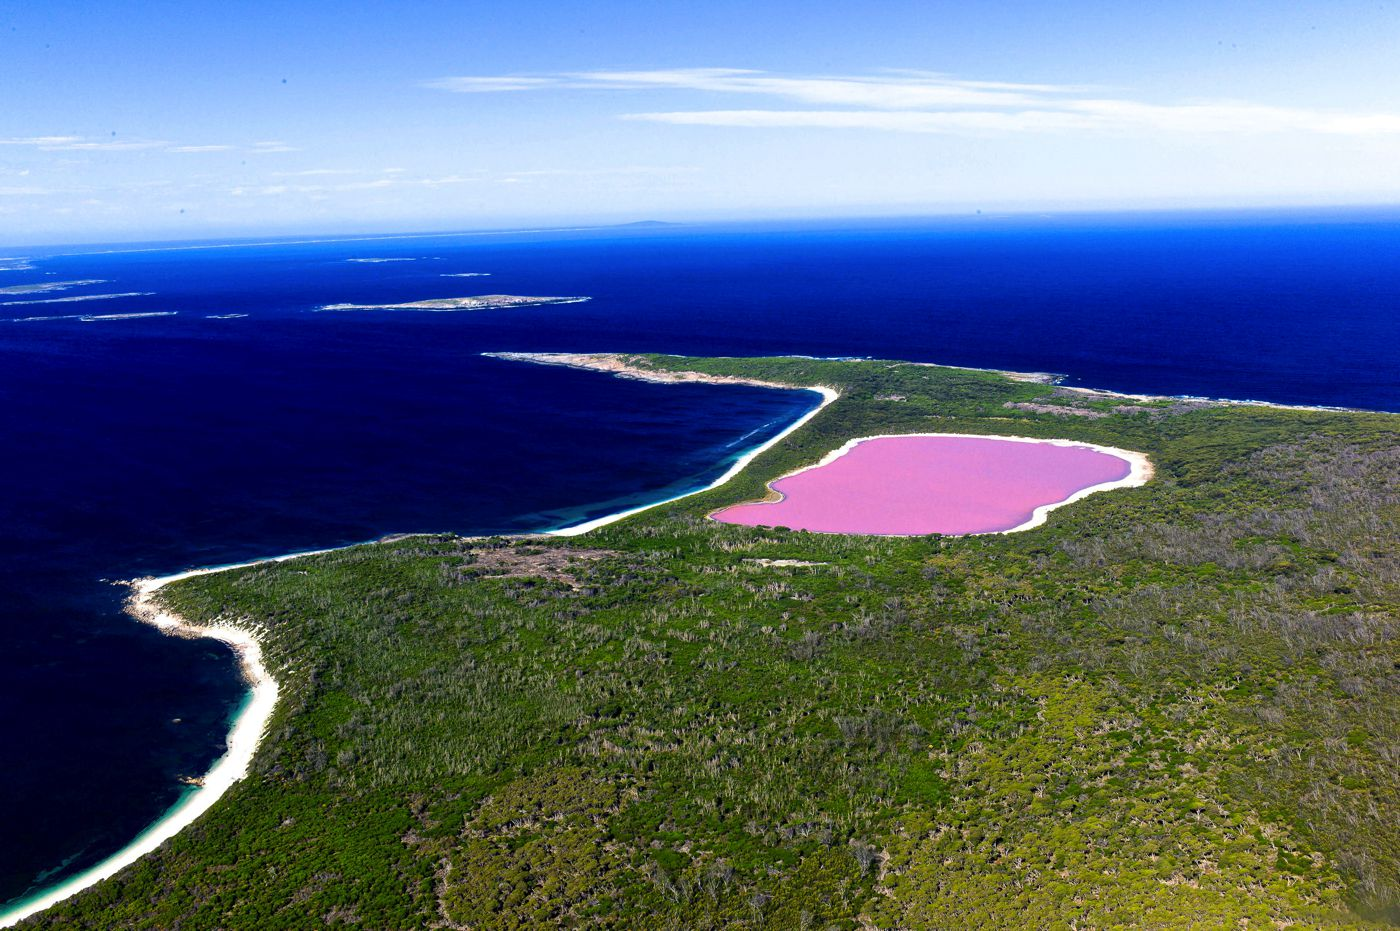 10 Unbelievably Beautiful Places In The World You Probably Never Heard Of But Should Visit! (7)